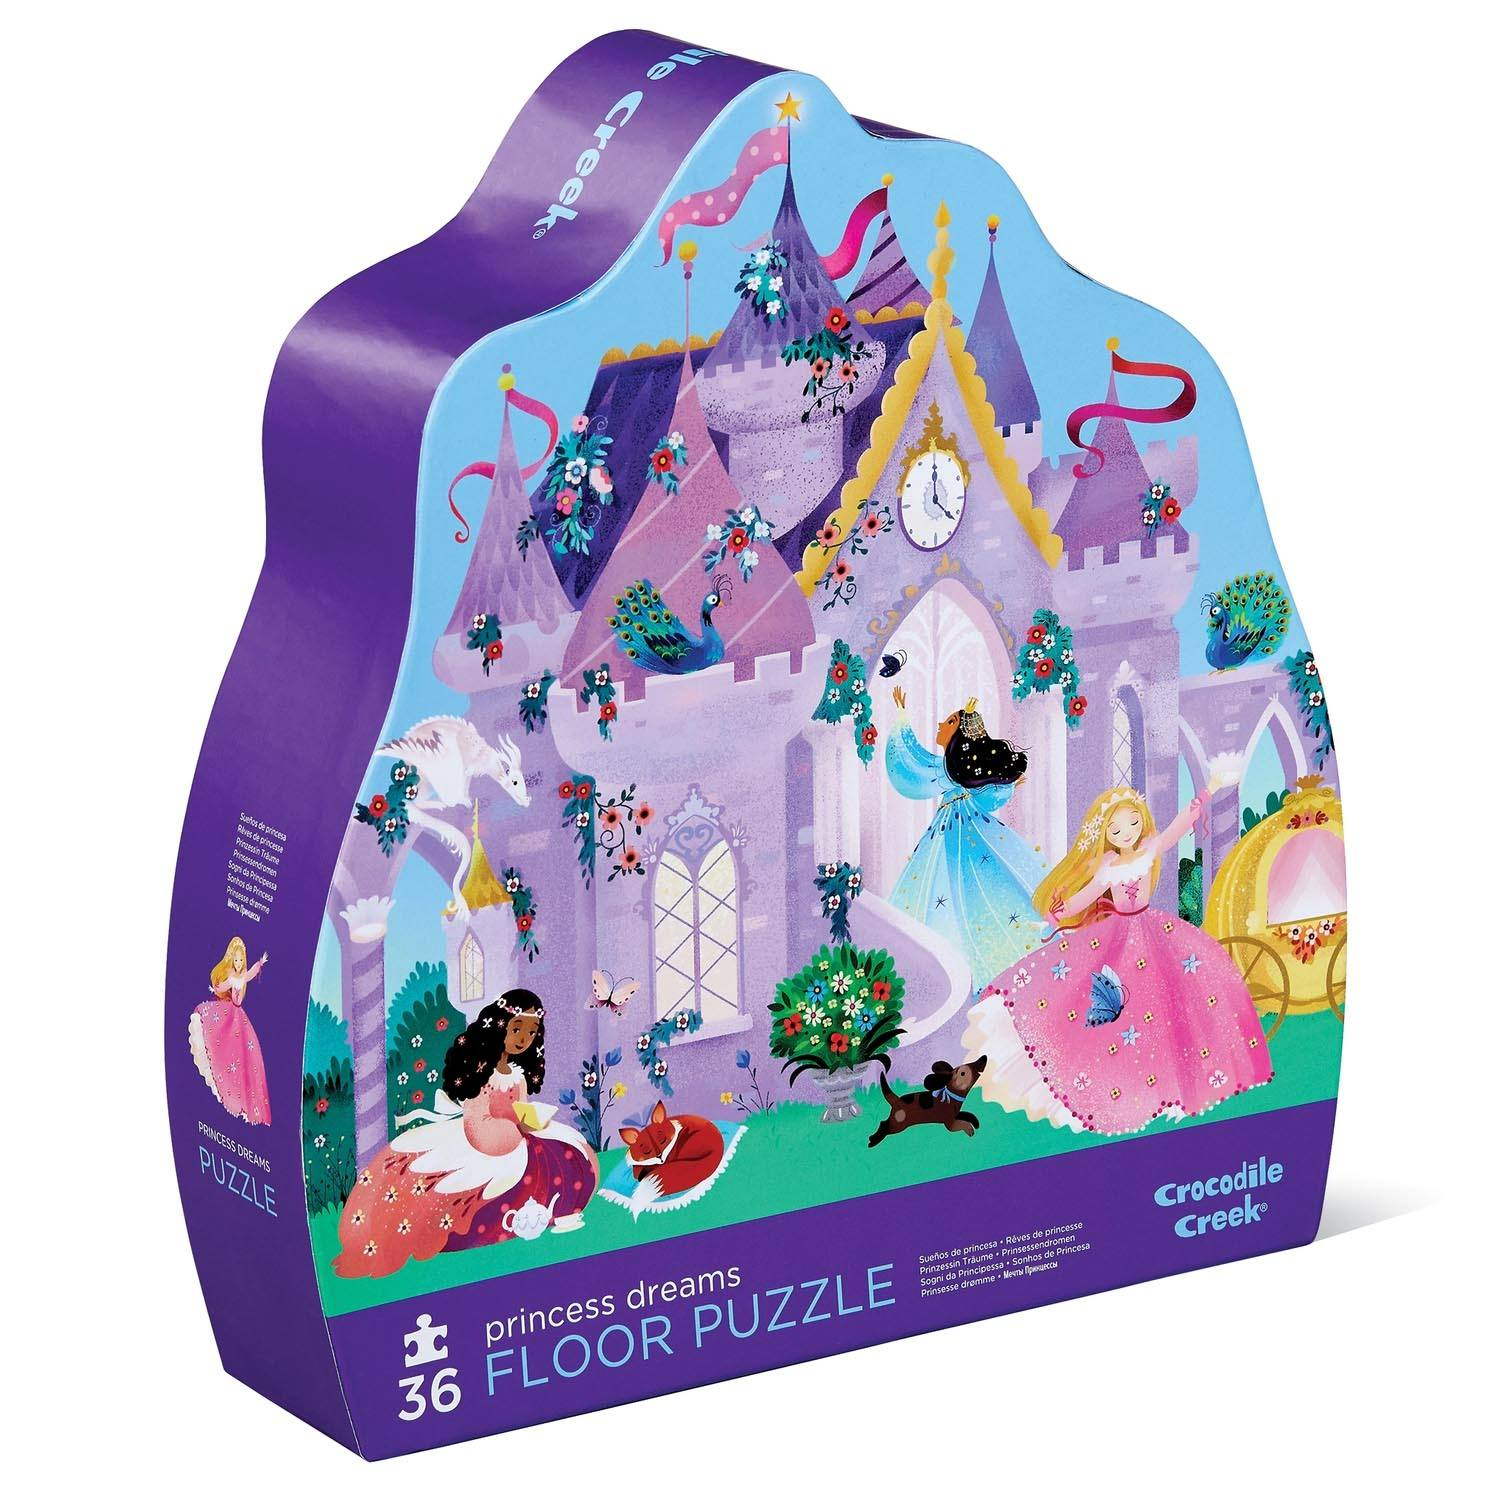 Classic Floor Puzzle 36 Pieces (Princess Dreams)